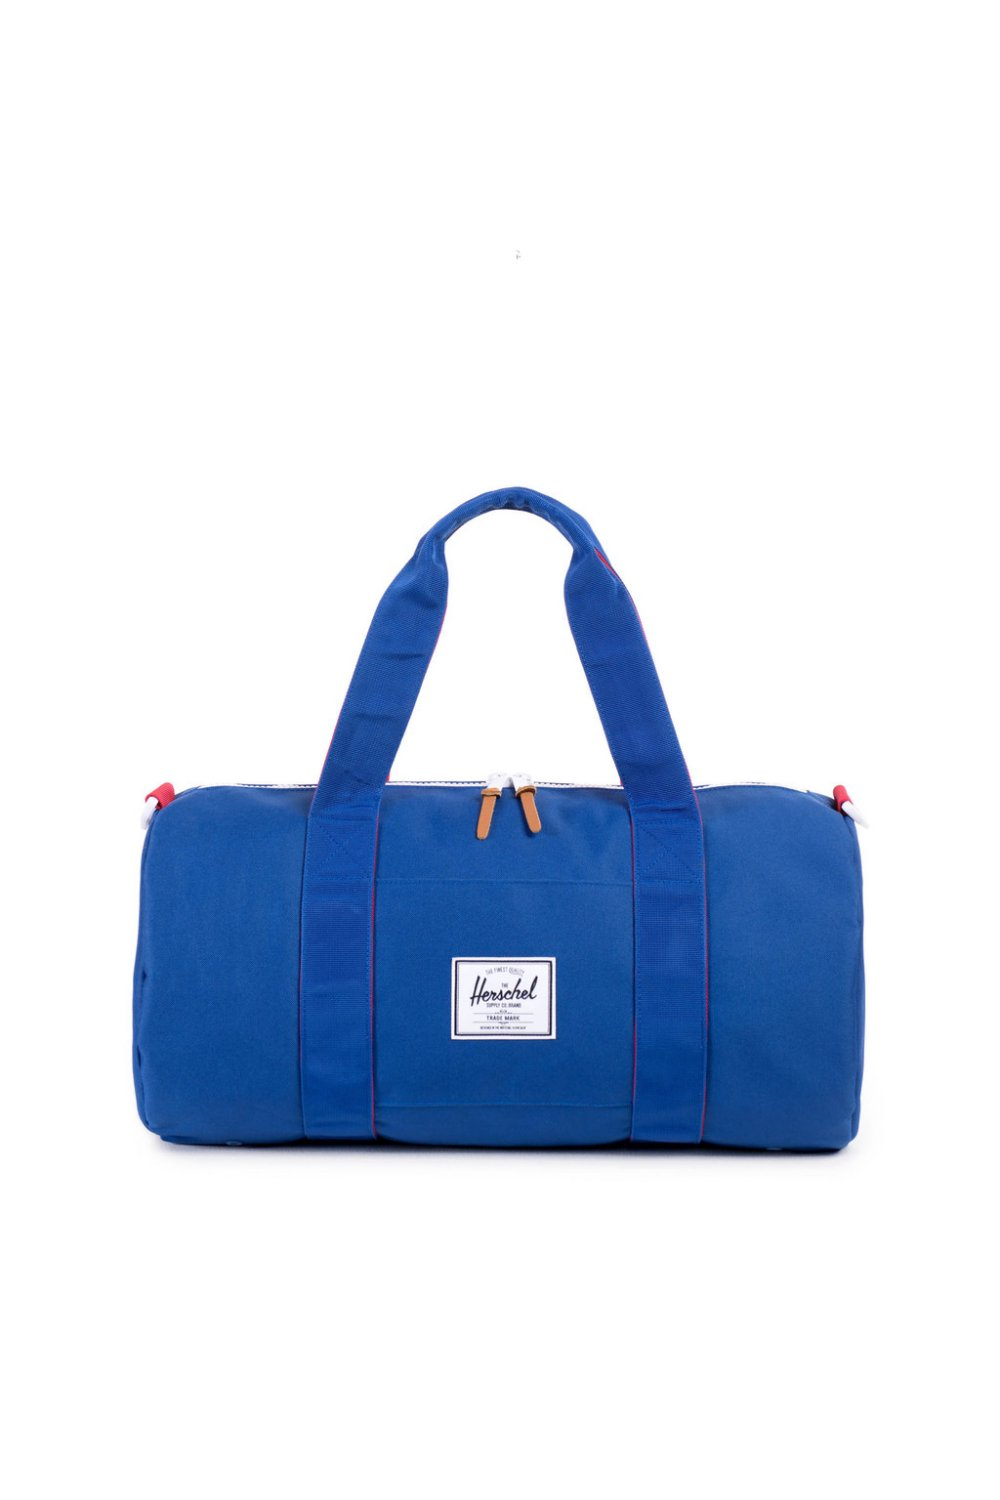 Herschel Supply Co Store Locator | Herschel Duffle Bag | Where to Buy Herschel